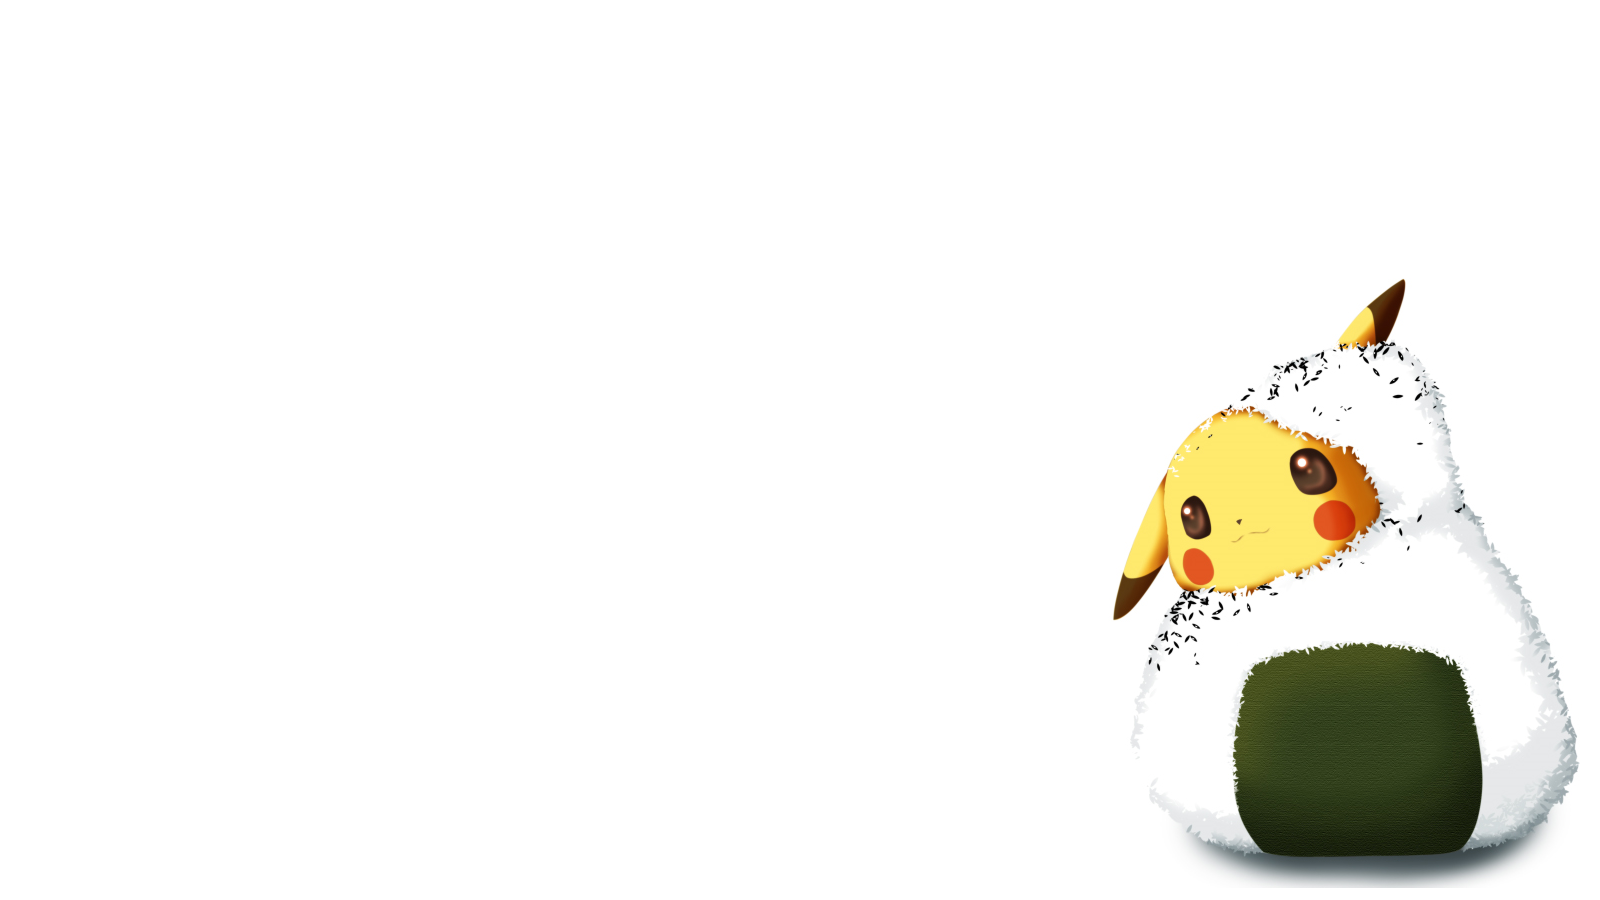 Pokemon Pikachu Wallpaper 1600x900 Pokemon Pikachu Rice 1600x900